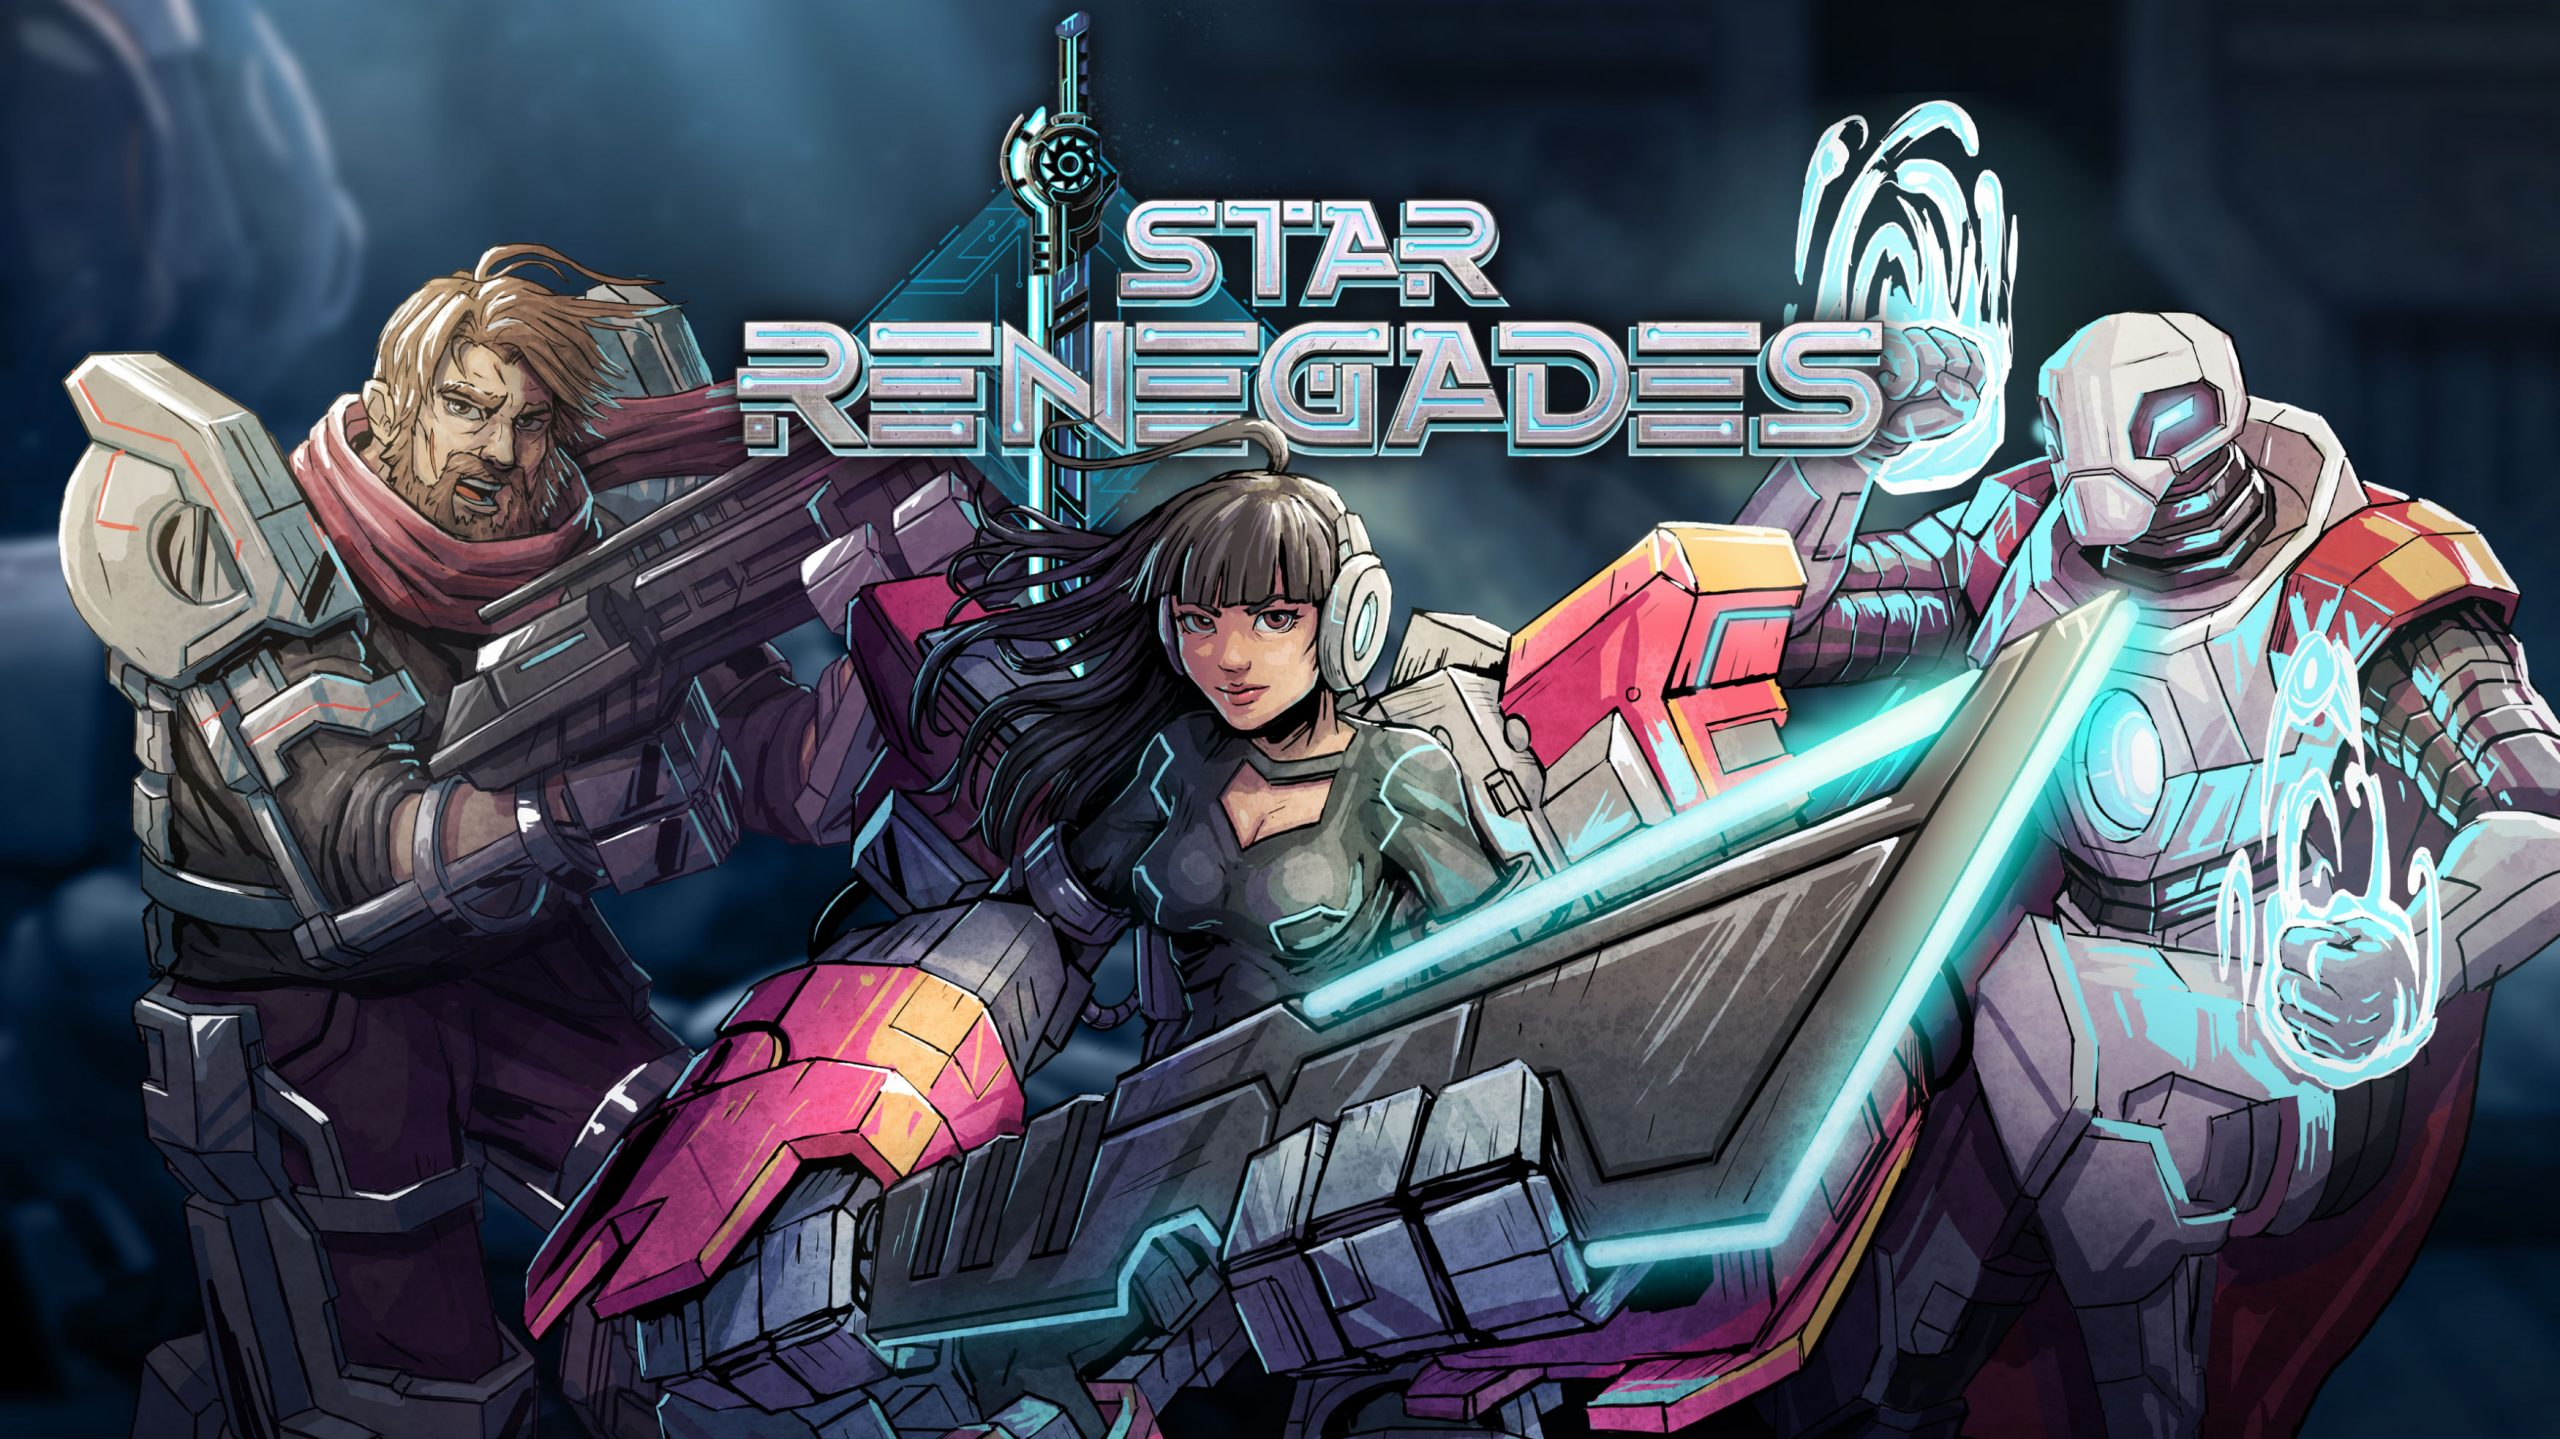 Artwork from Star Renegades